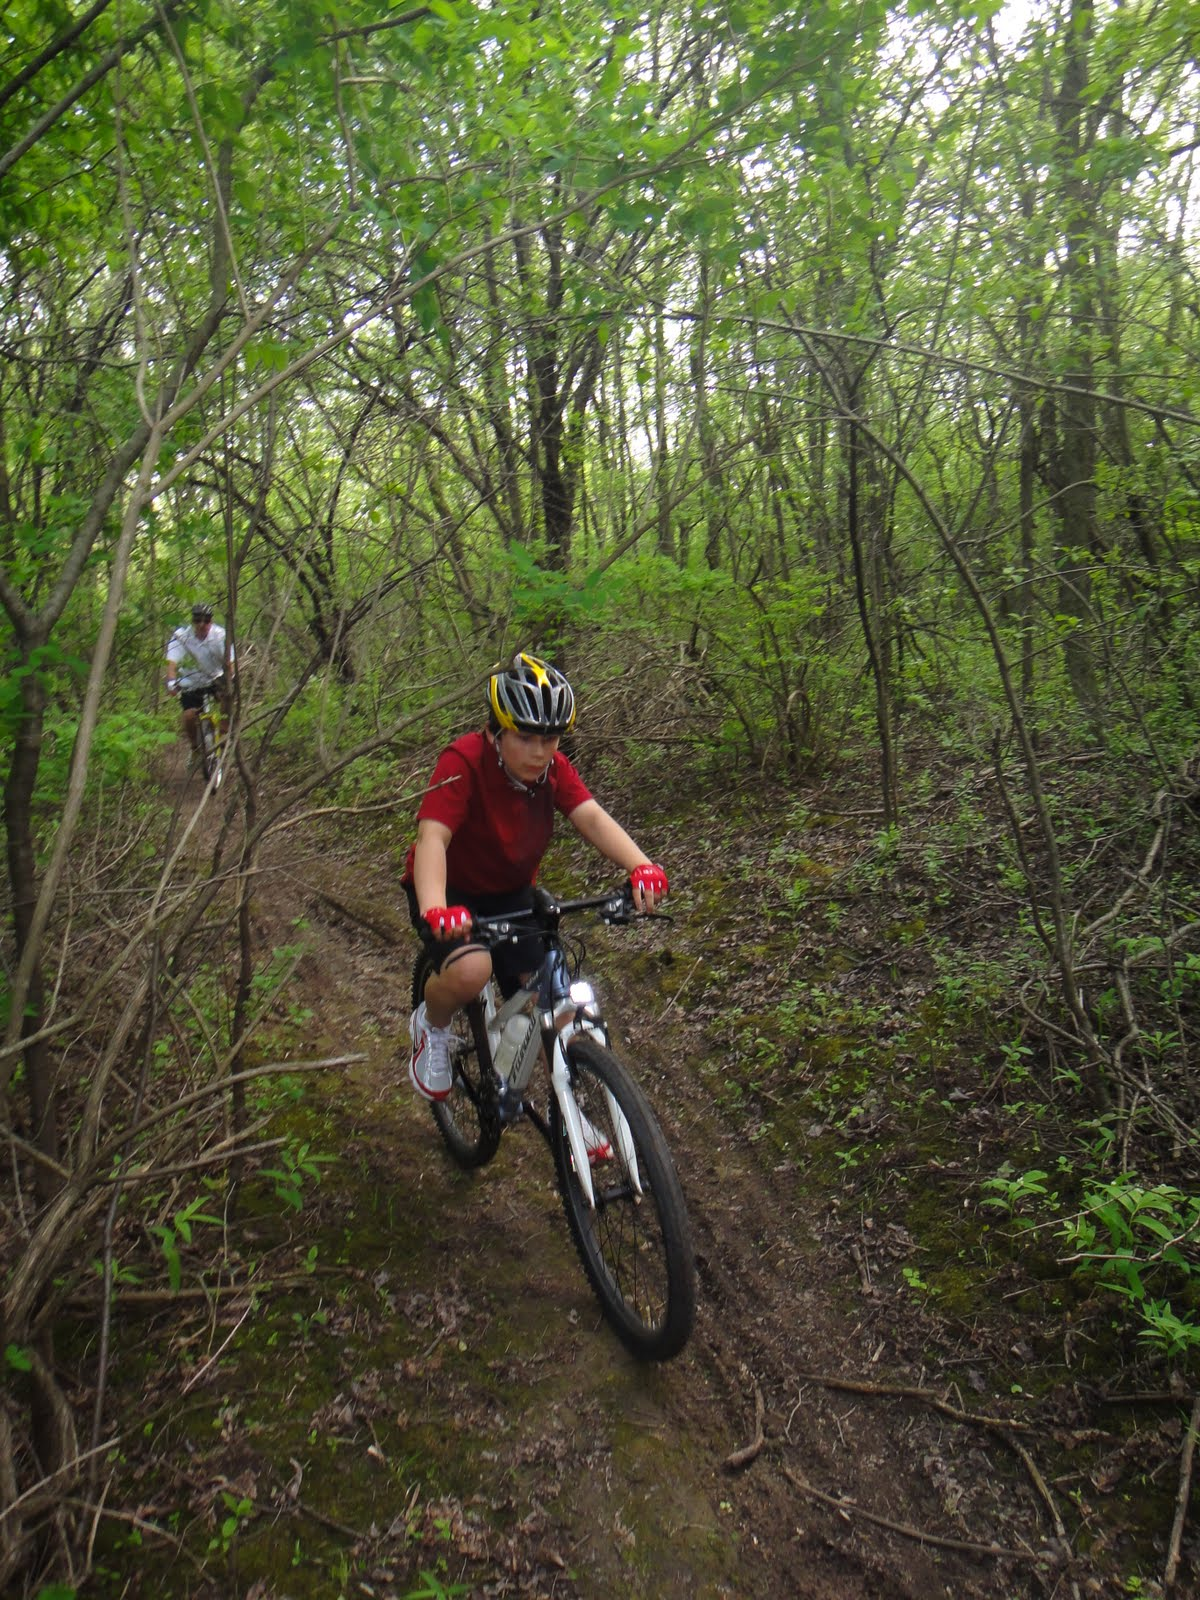 mmb mountain biking 6 days ago  cycling merit badge is an option for the eagle scout rank  the requirements for  one of the following options: road biking or mountain biking.